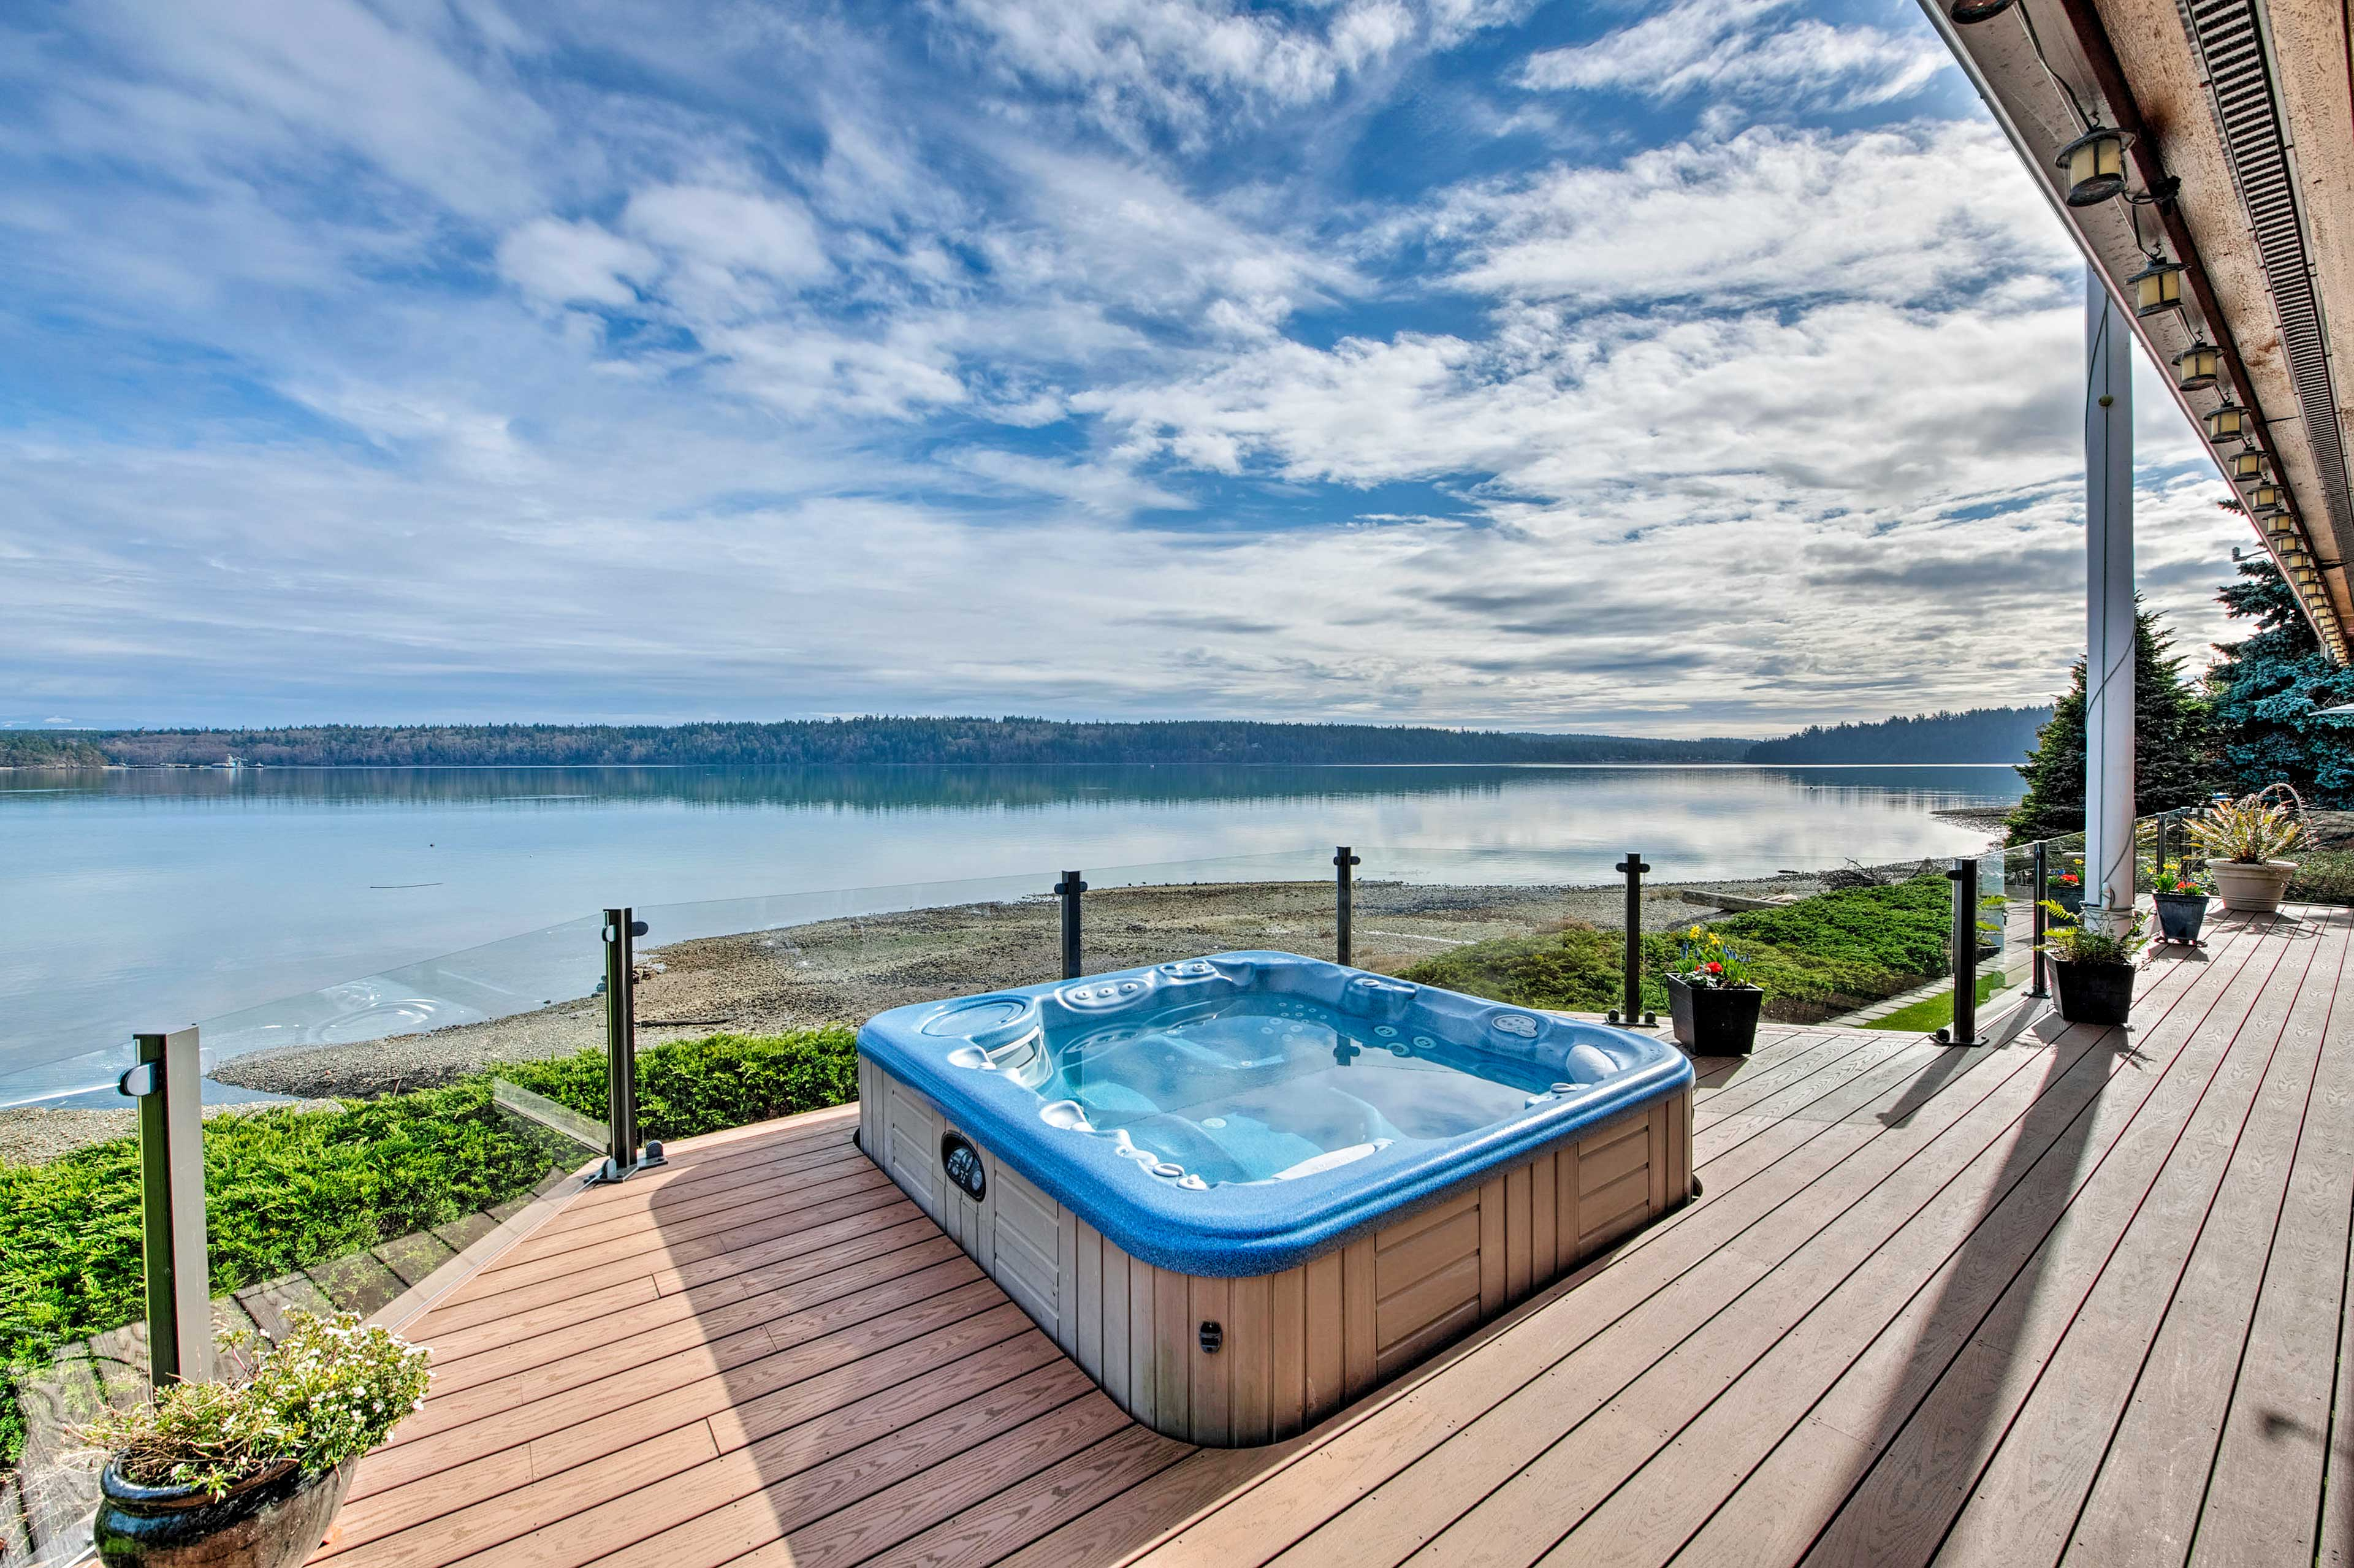 The property has a private hot tub for unwinding.